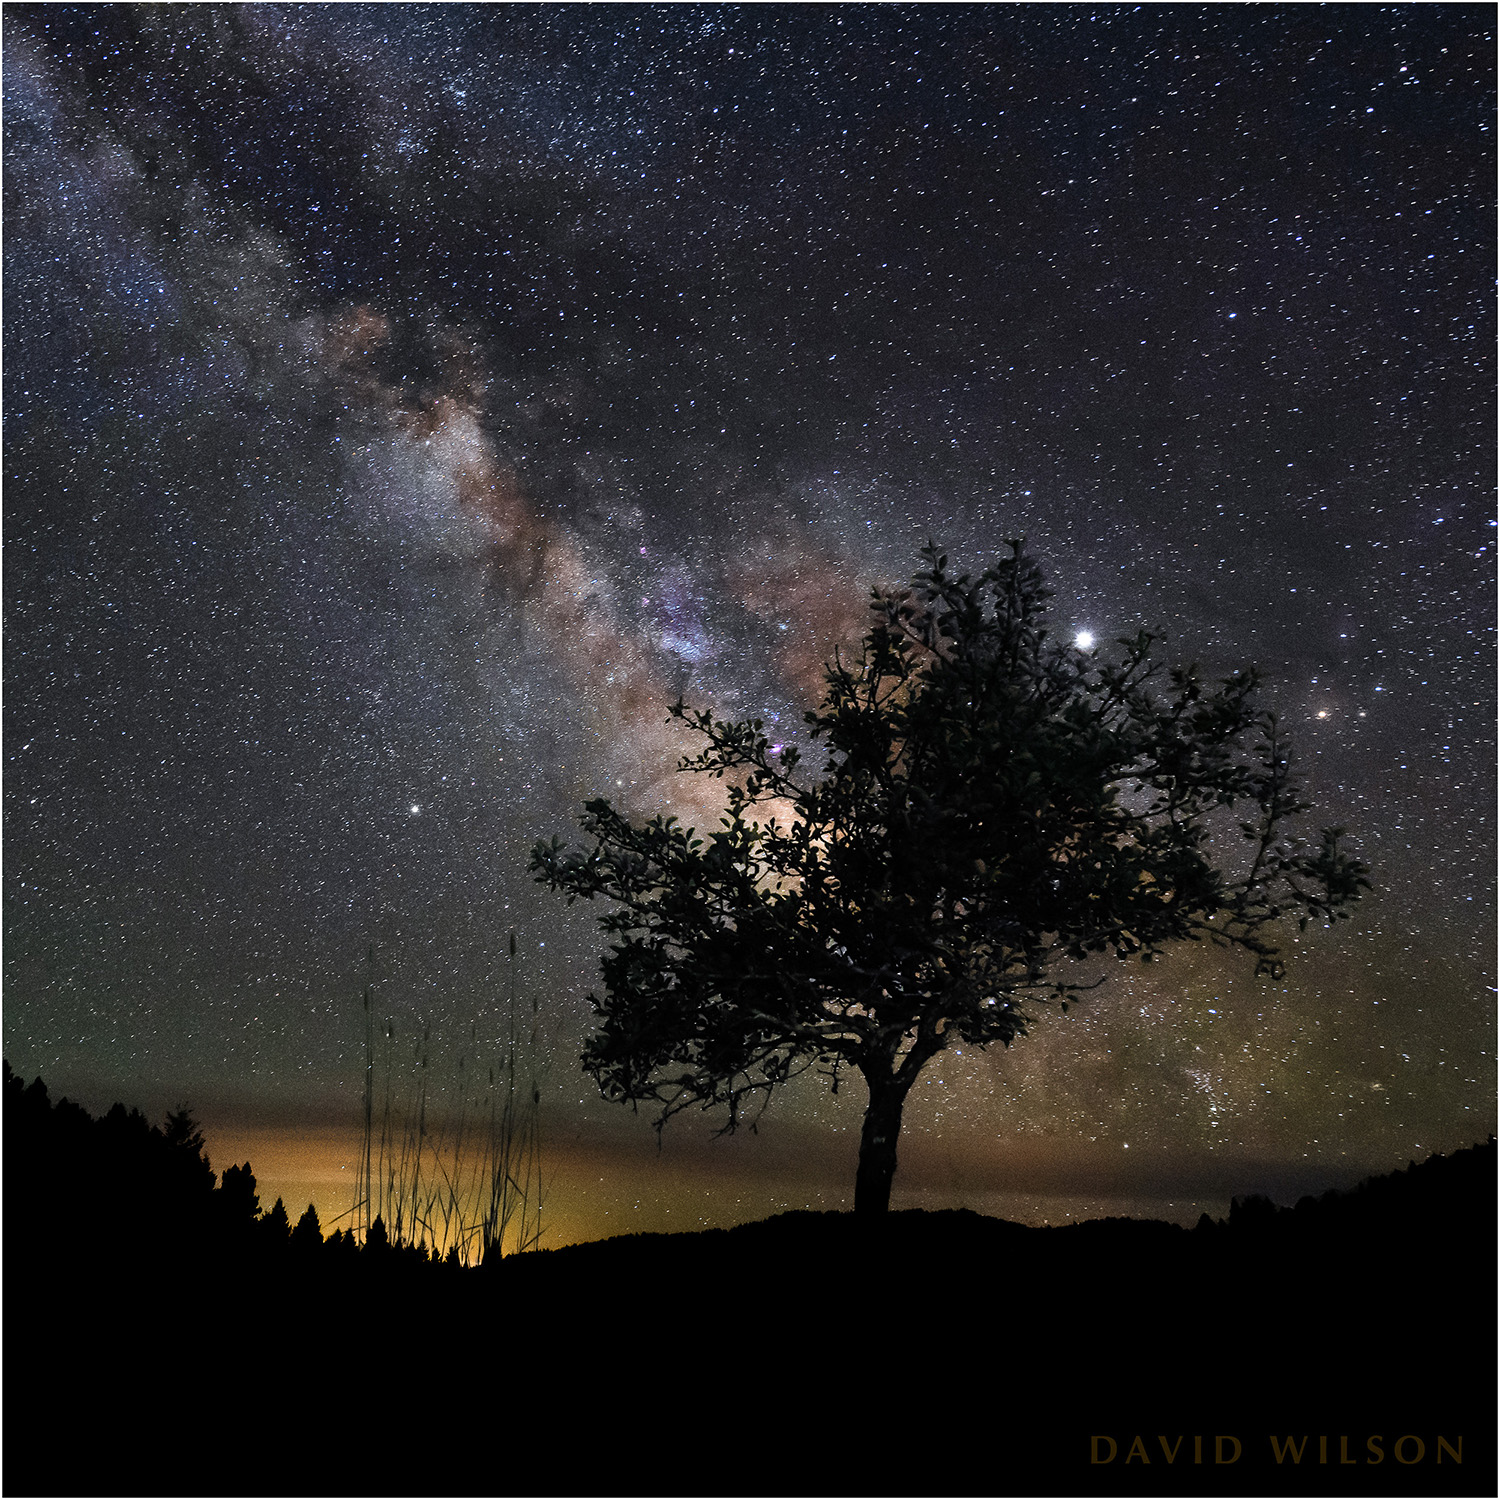 An old, stunted pear tree abides in its nightly vigil beneath the Milky Way. The tree lives in Southern Humboldt County, California, but the far ridge line is in Mendocino County.